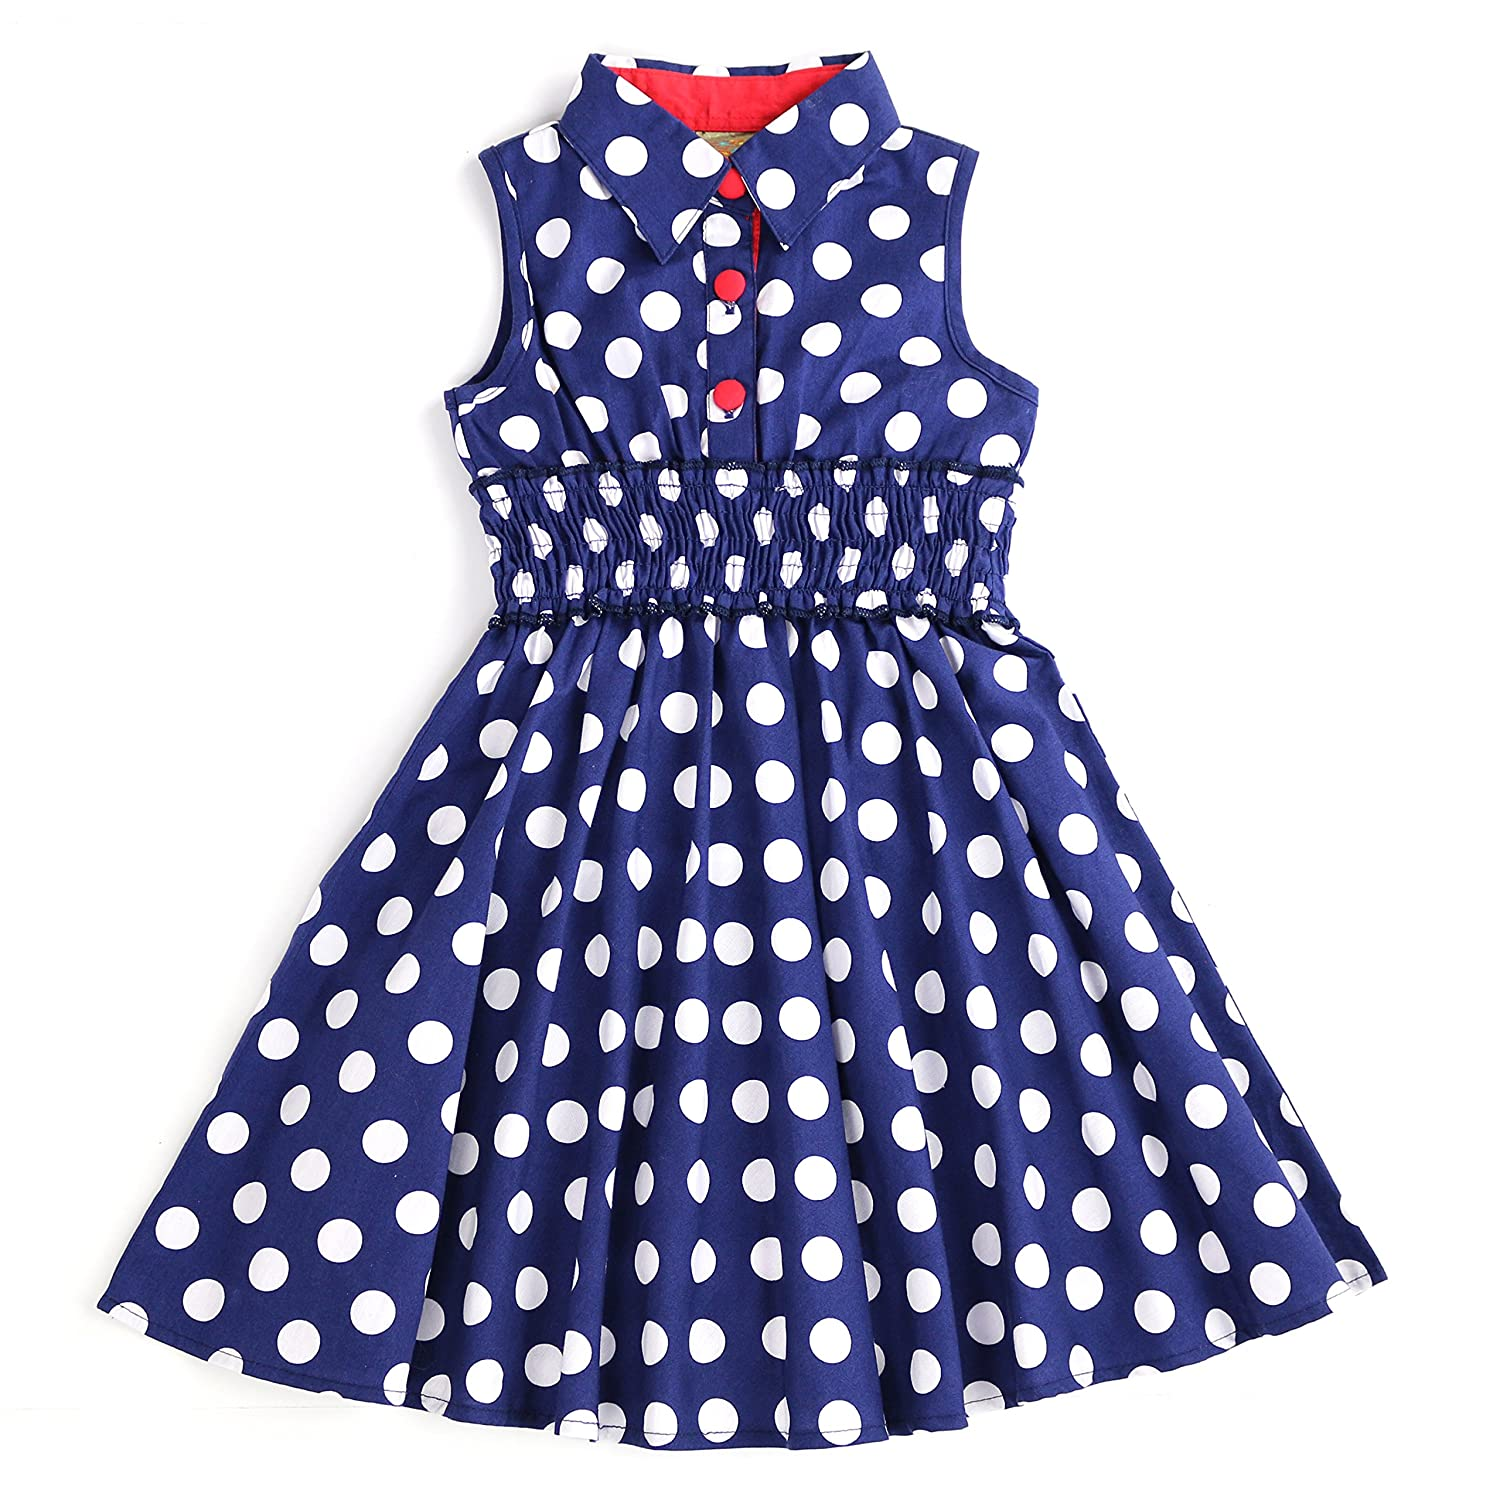 Vintage Style Children's Clothing: Girls, Boys, Baby, Toddler MARIA ELENA - Toddlers Girls Super Soft Cotton Sleeveless Cinched Waist Fiona Gabrielle Polka Dot Shirt-Dress (2T-7/8) $21.99 AT vintagedancer.com